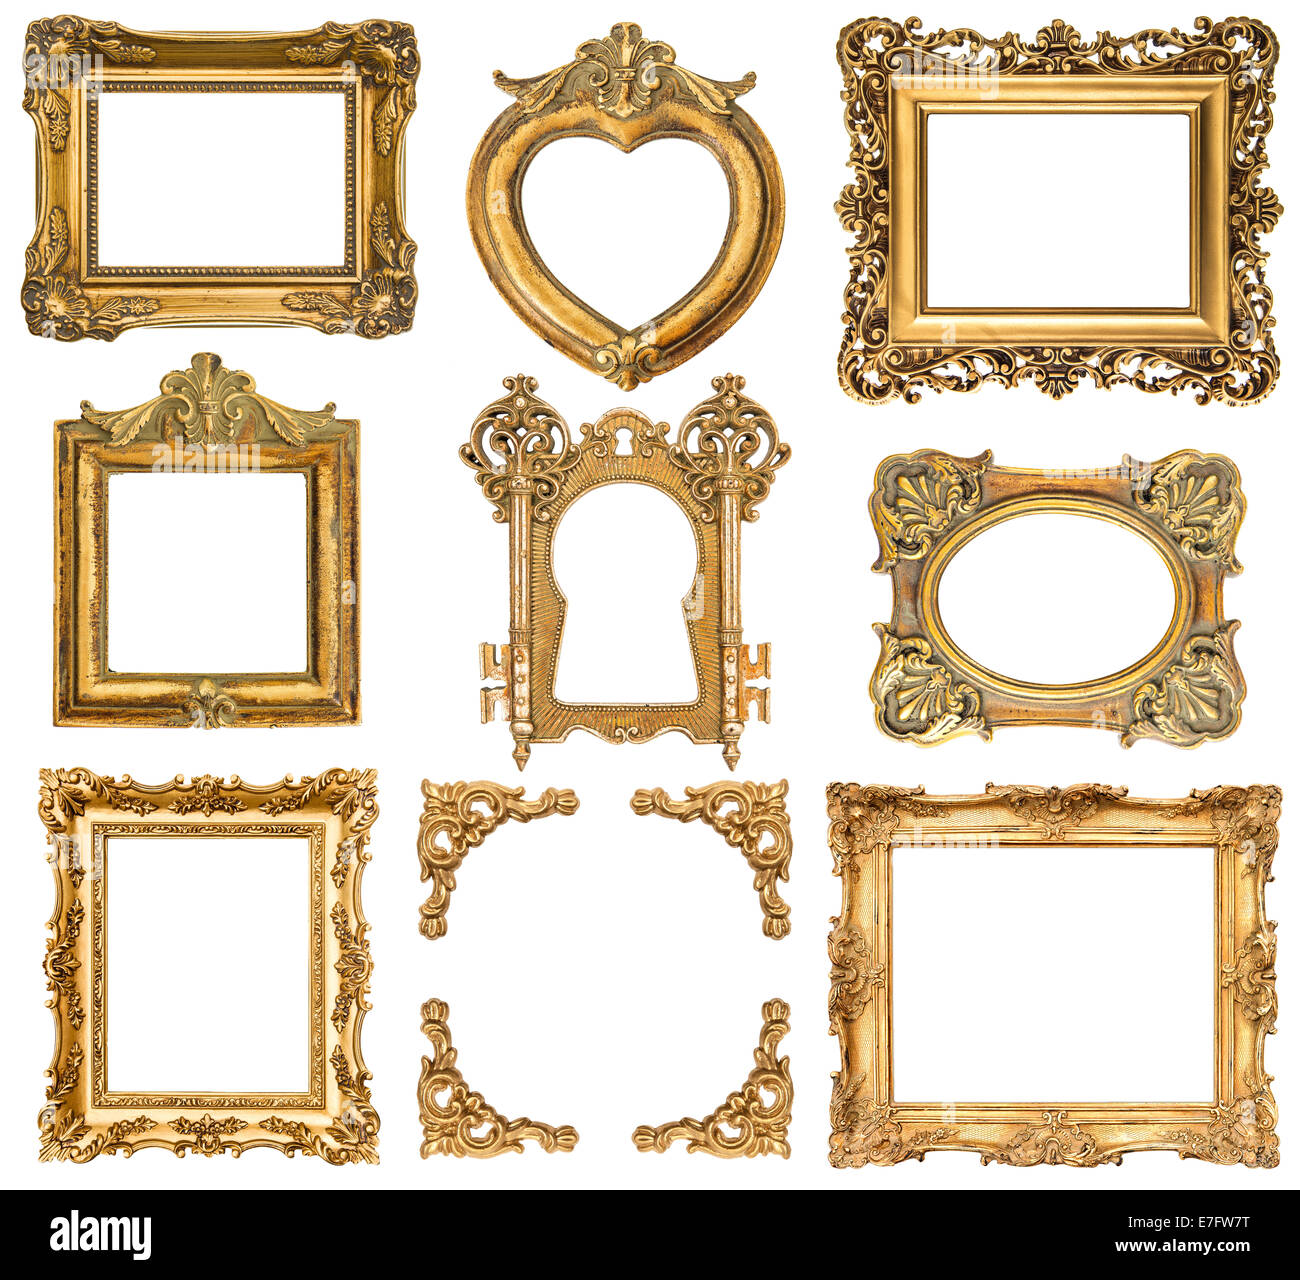 2850f3c7fa29 set of golden frames isolated on white background. baroque style antique  objects. vintage background